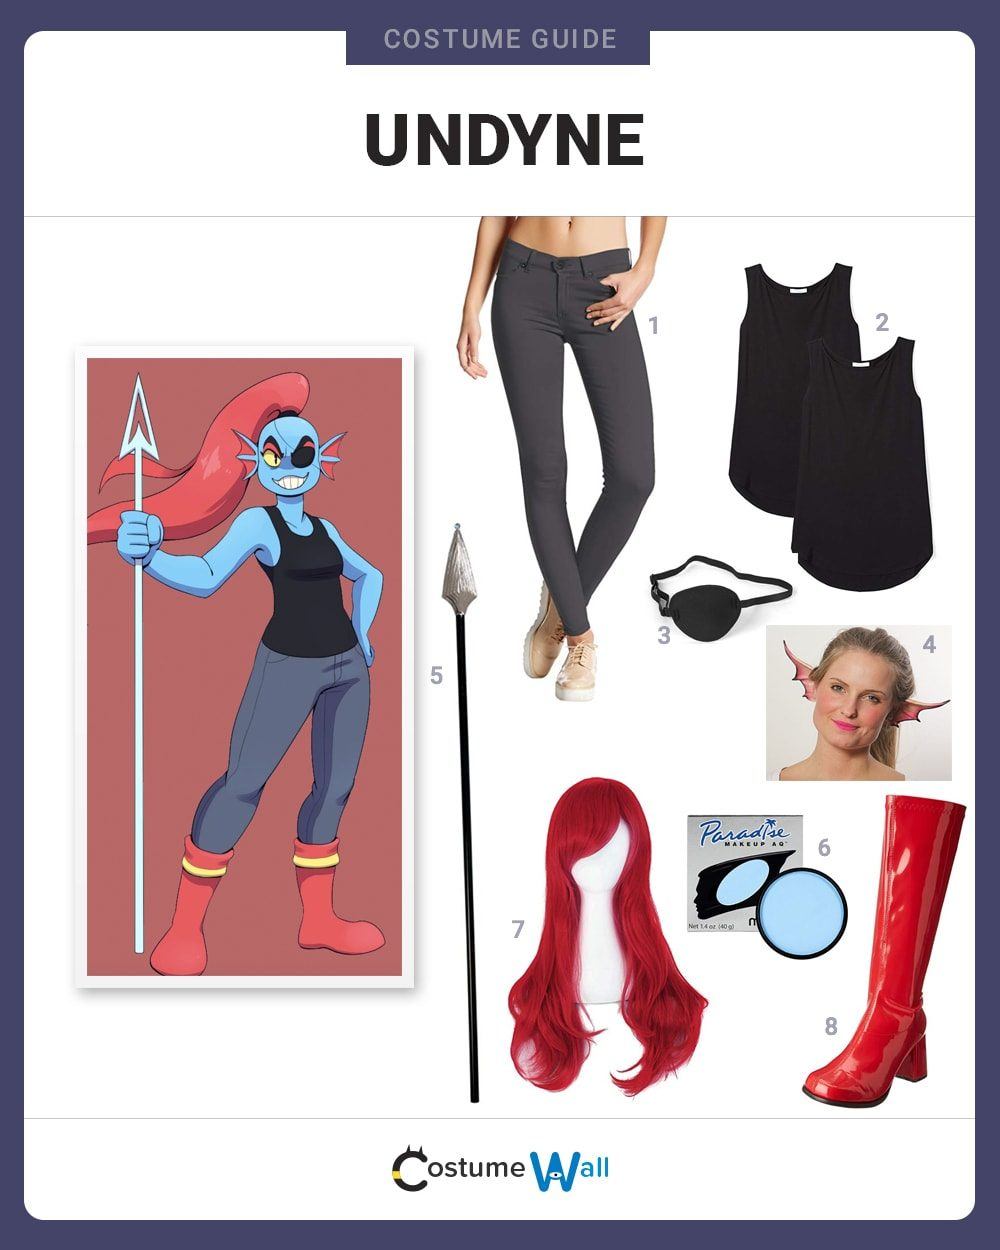 Undyne Costume Guide